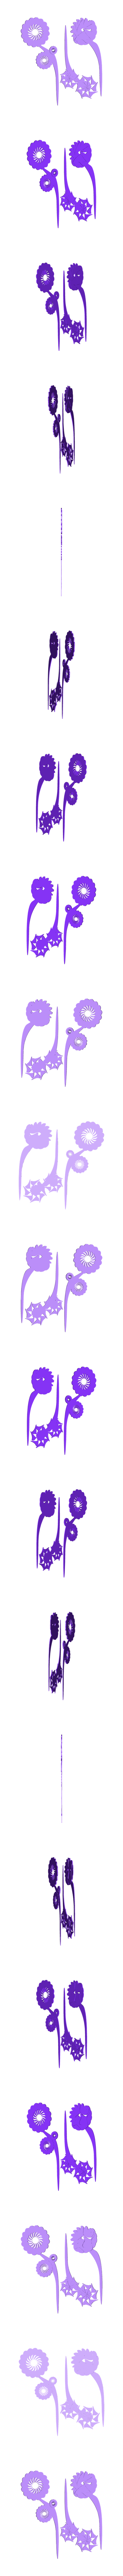 3flowers.stl Download free STL file flowers and vase • 3D printing template, squiqui